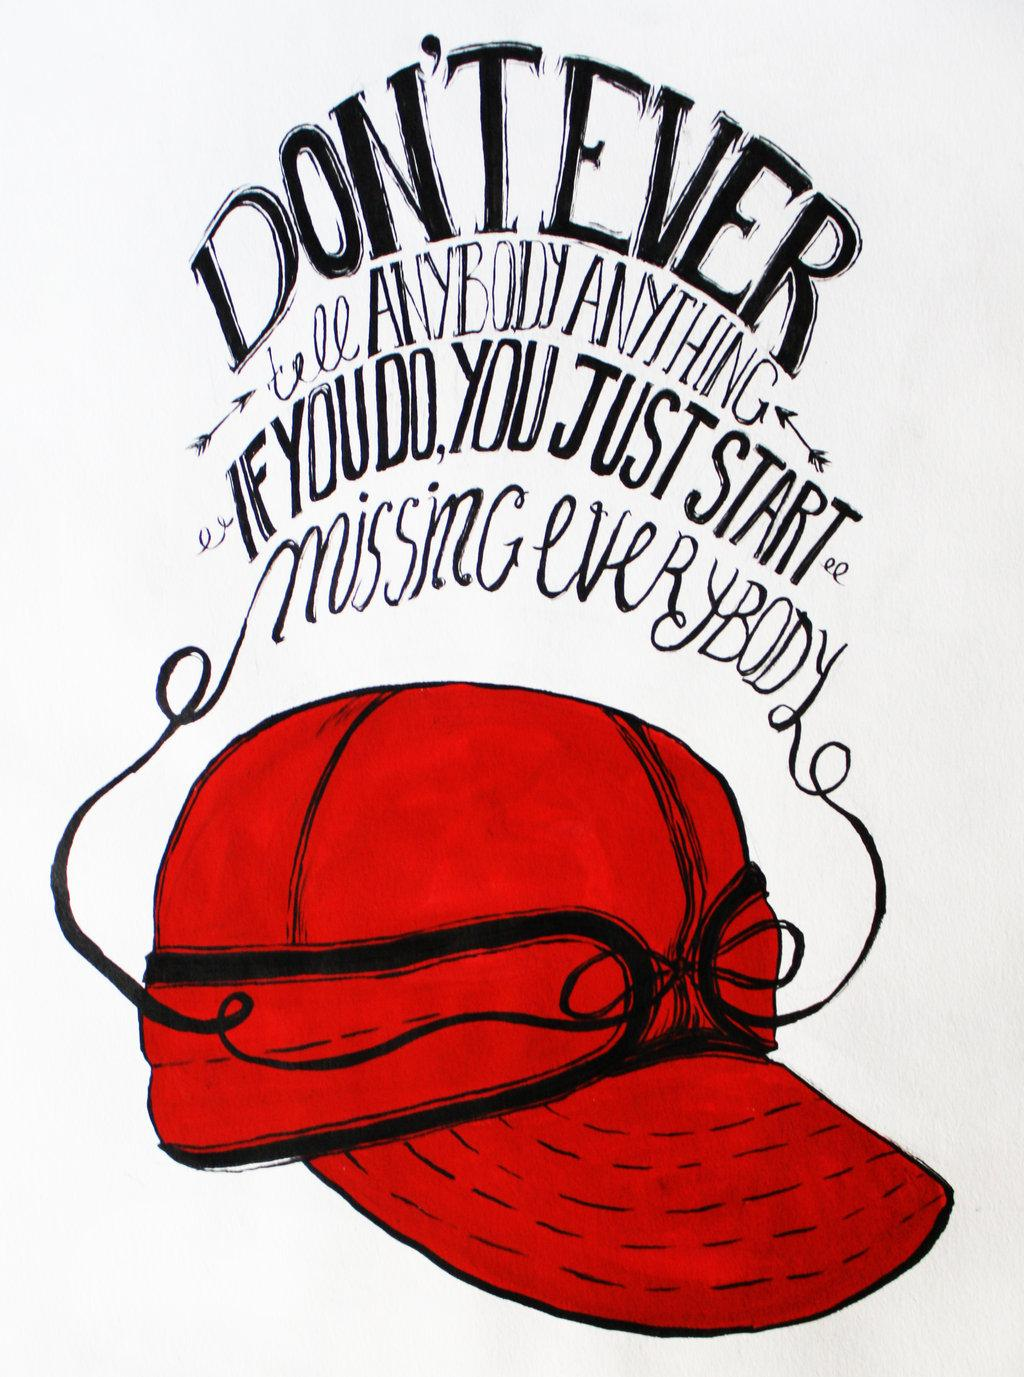 a character review of holden caulfield in the catcher in the rye A review of jd salinger's classic novel the catcher in the rye, a book about holden's the catcher in the rye review holden caulfield, a character so.